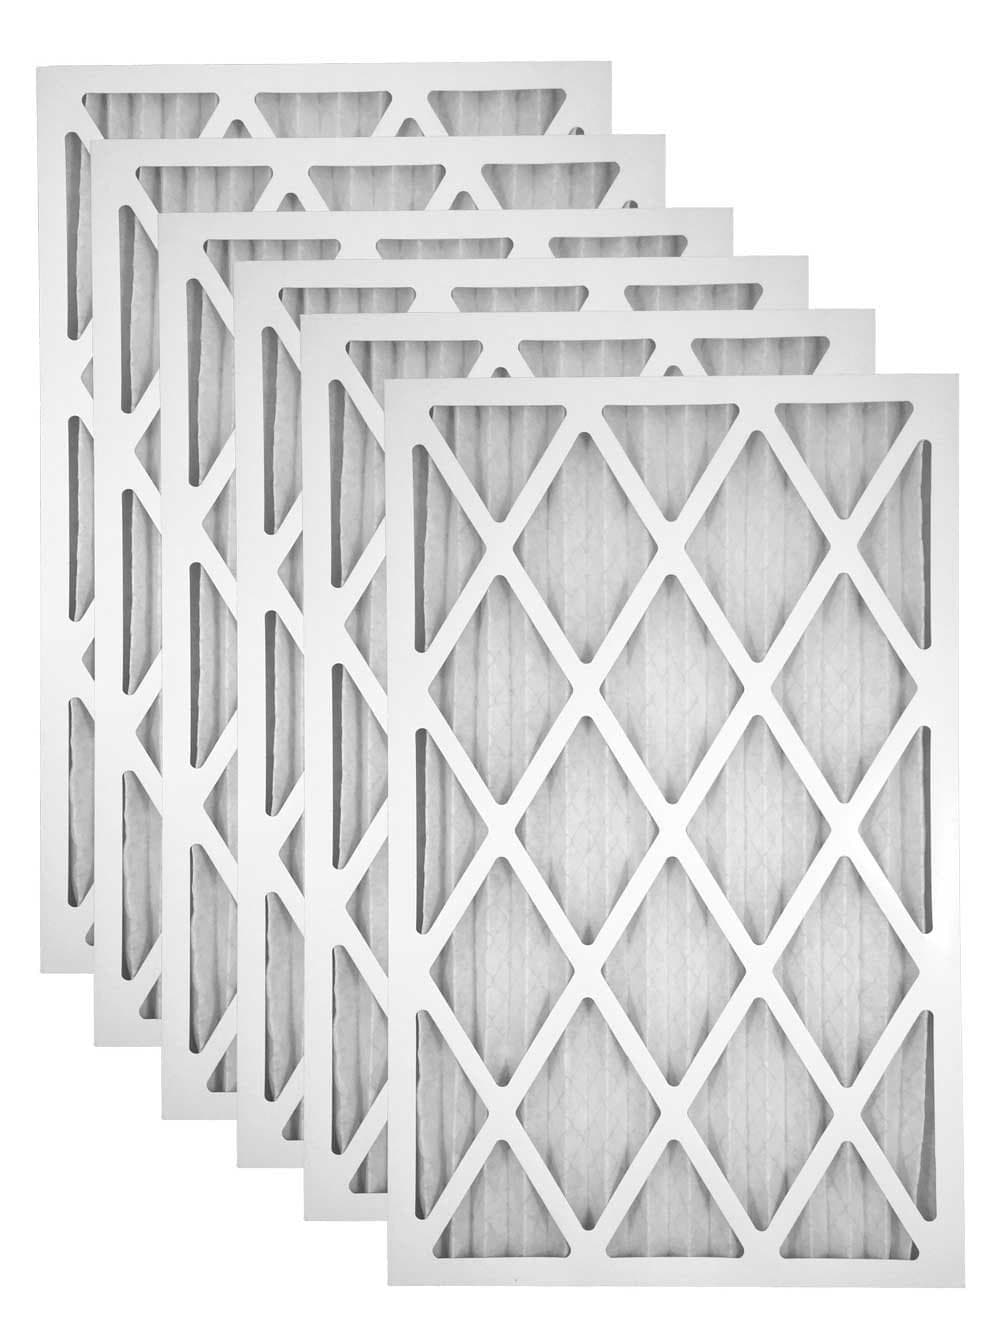 Atomic 12x24x2 MERV 13 Pleated AC Furnace Filter - 6 Pack